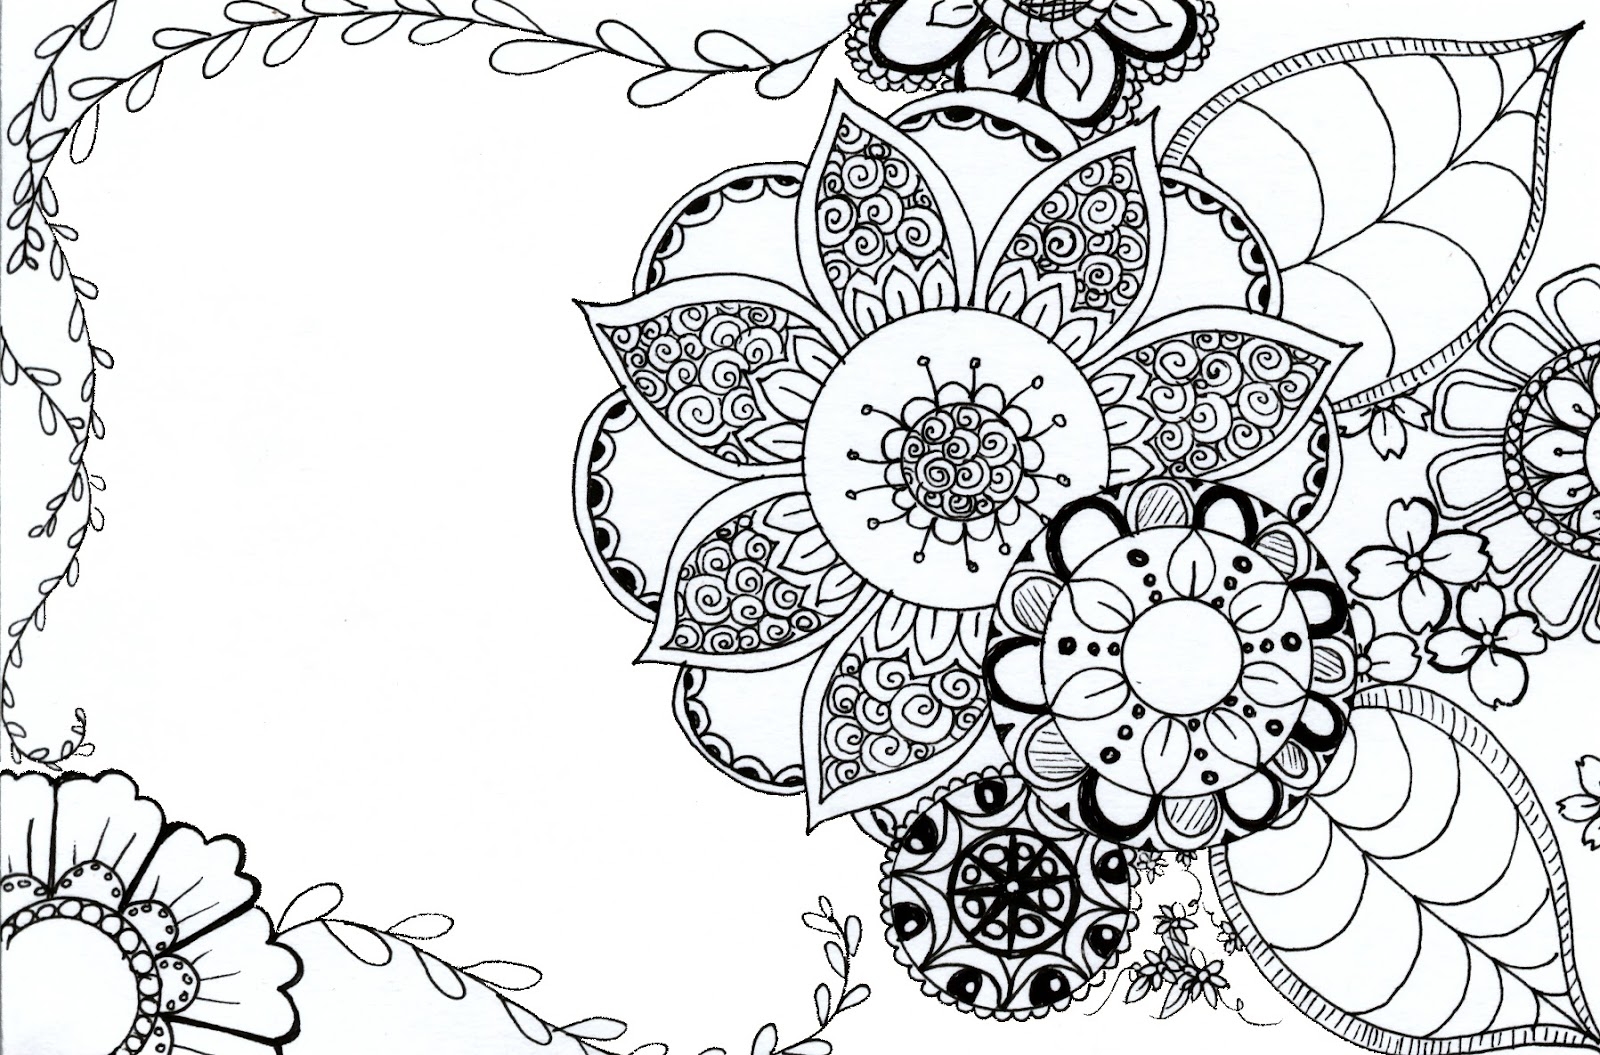 Tarkheena Crafts Flower Coloring Pages